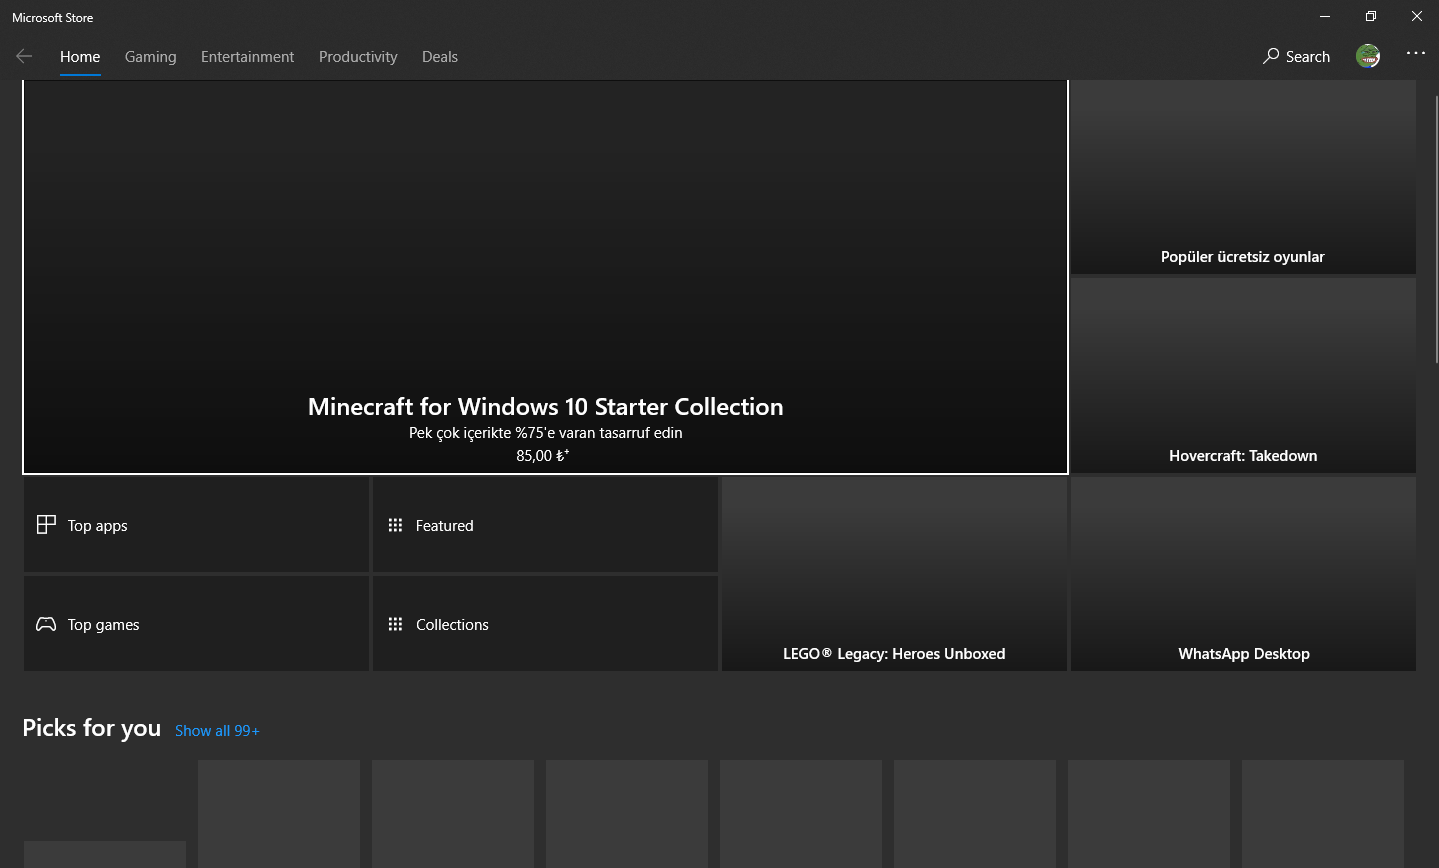 Microsoft Store issue I can't download anything. db0c6681-612d-4663-aa7c-8917f2dae7d9?upload=true.png